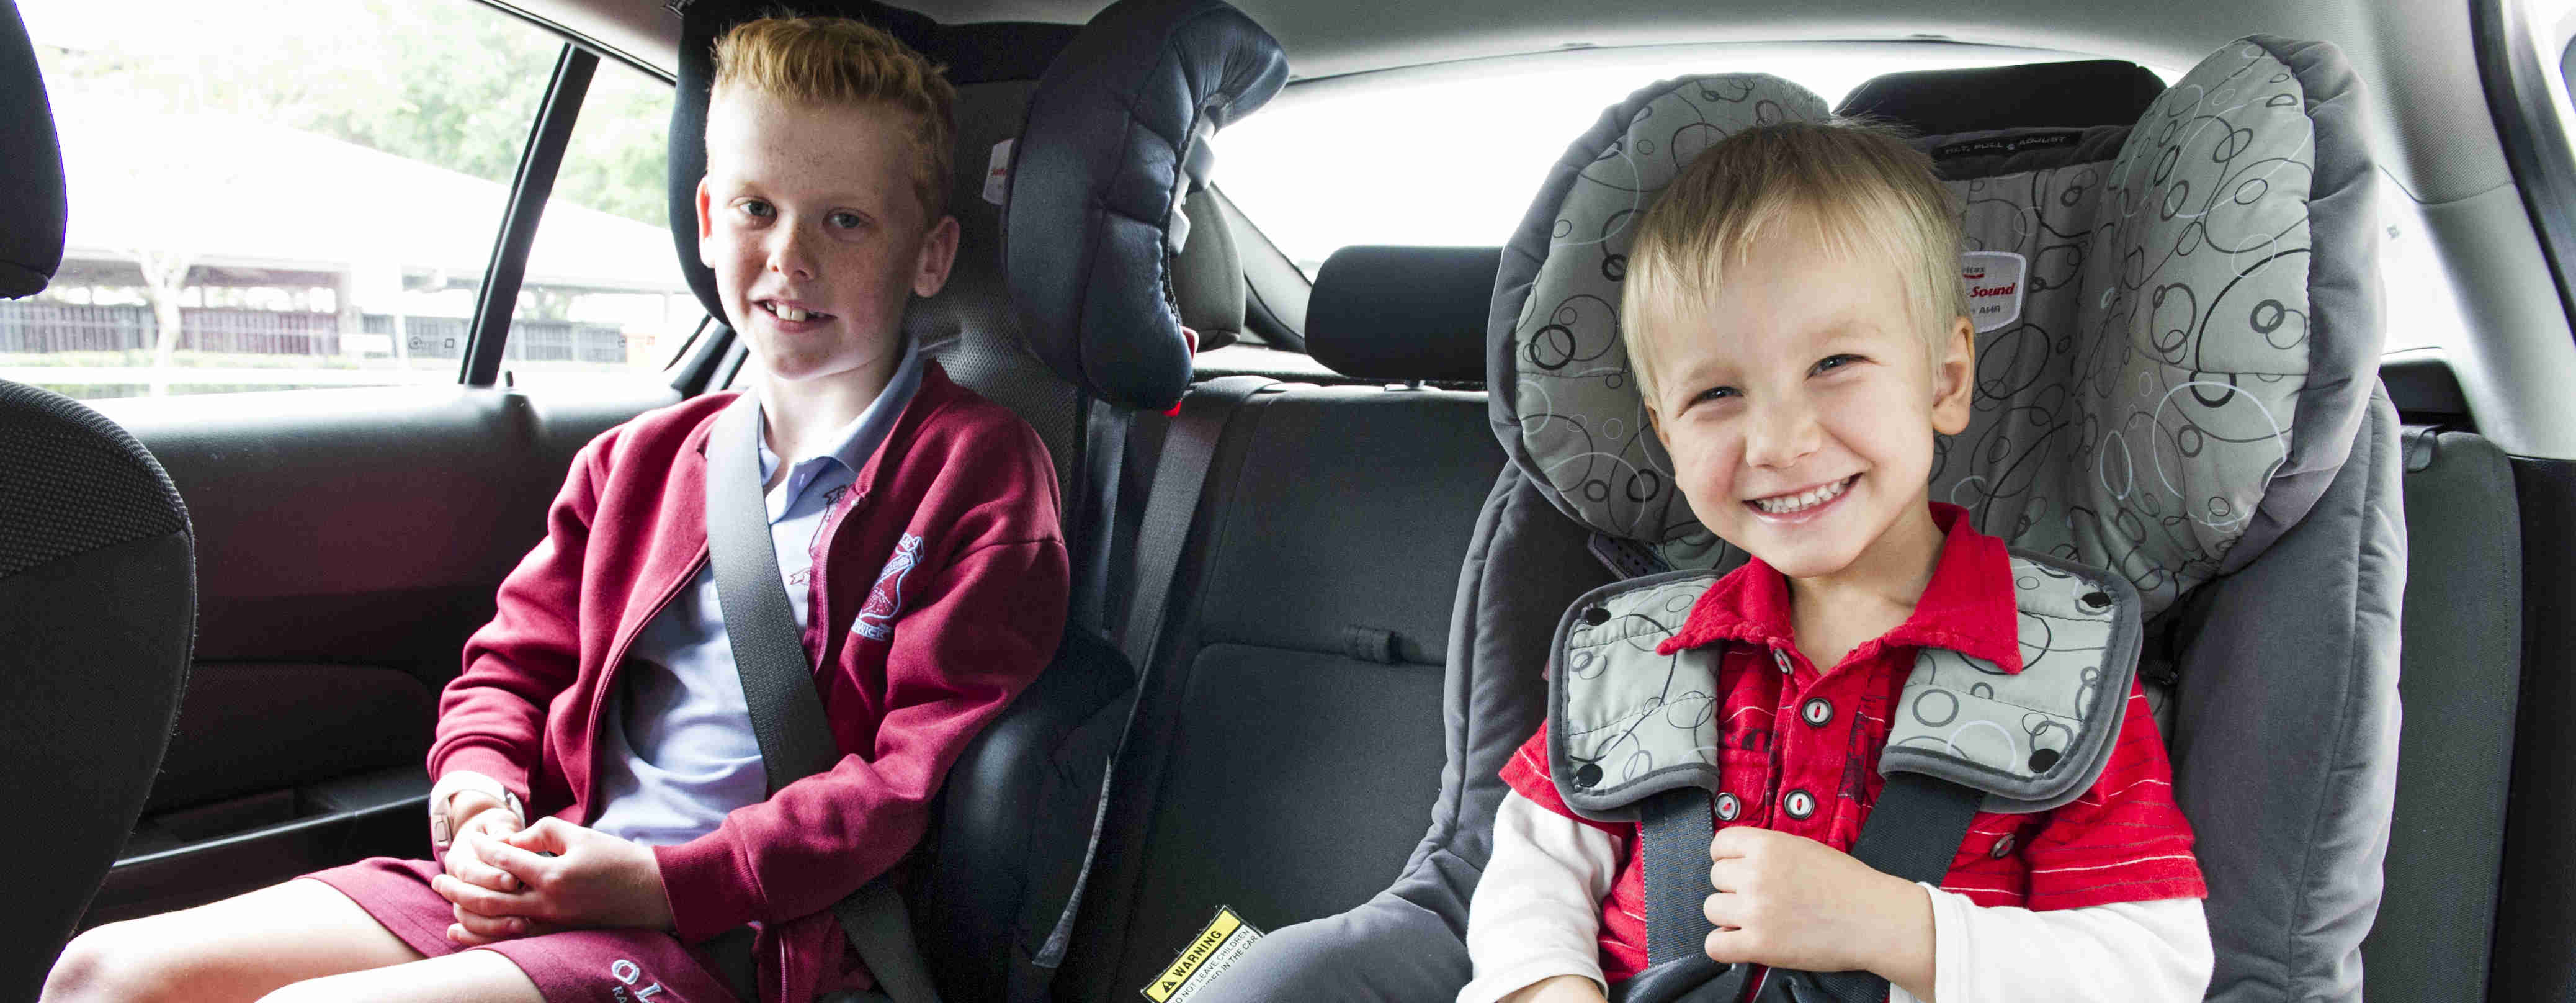 Two young boys in child restraint seats